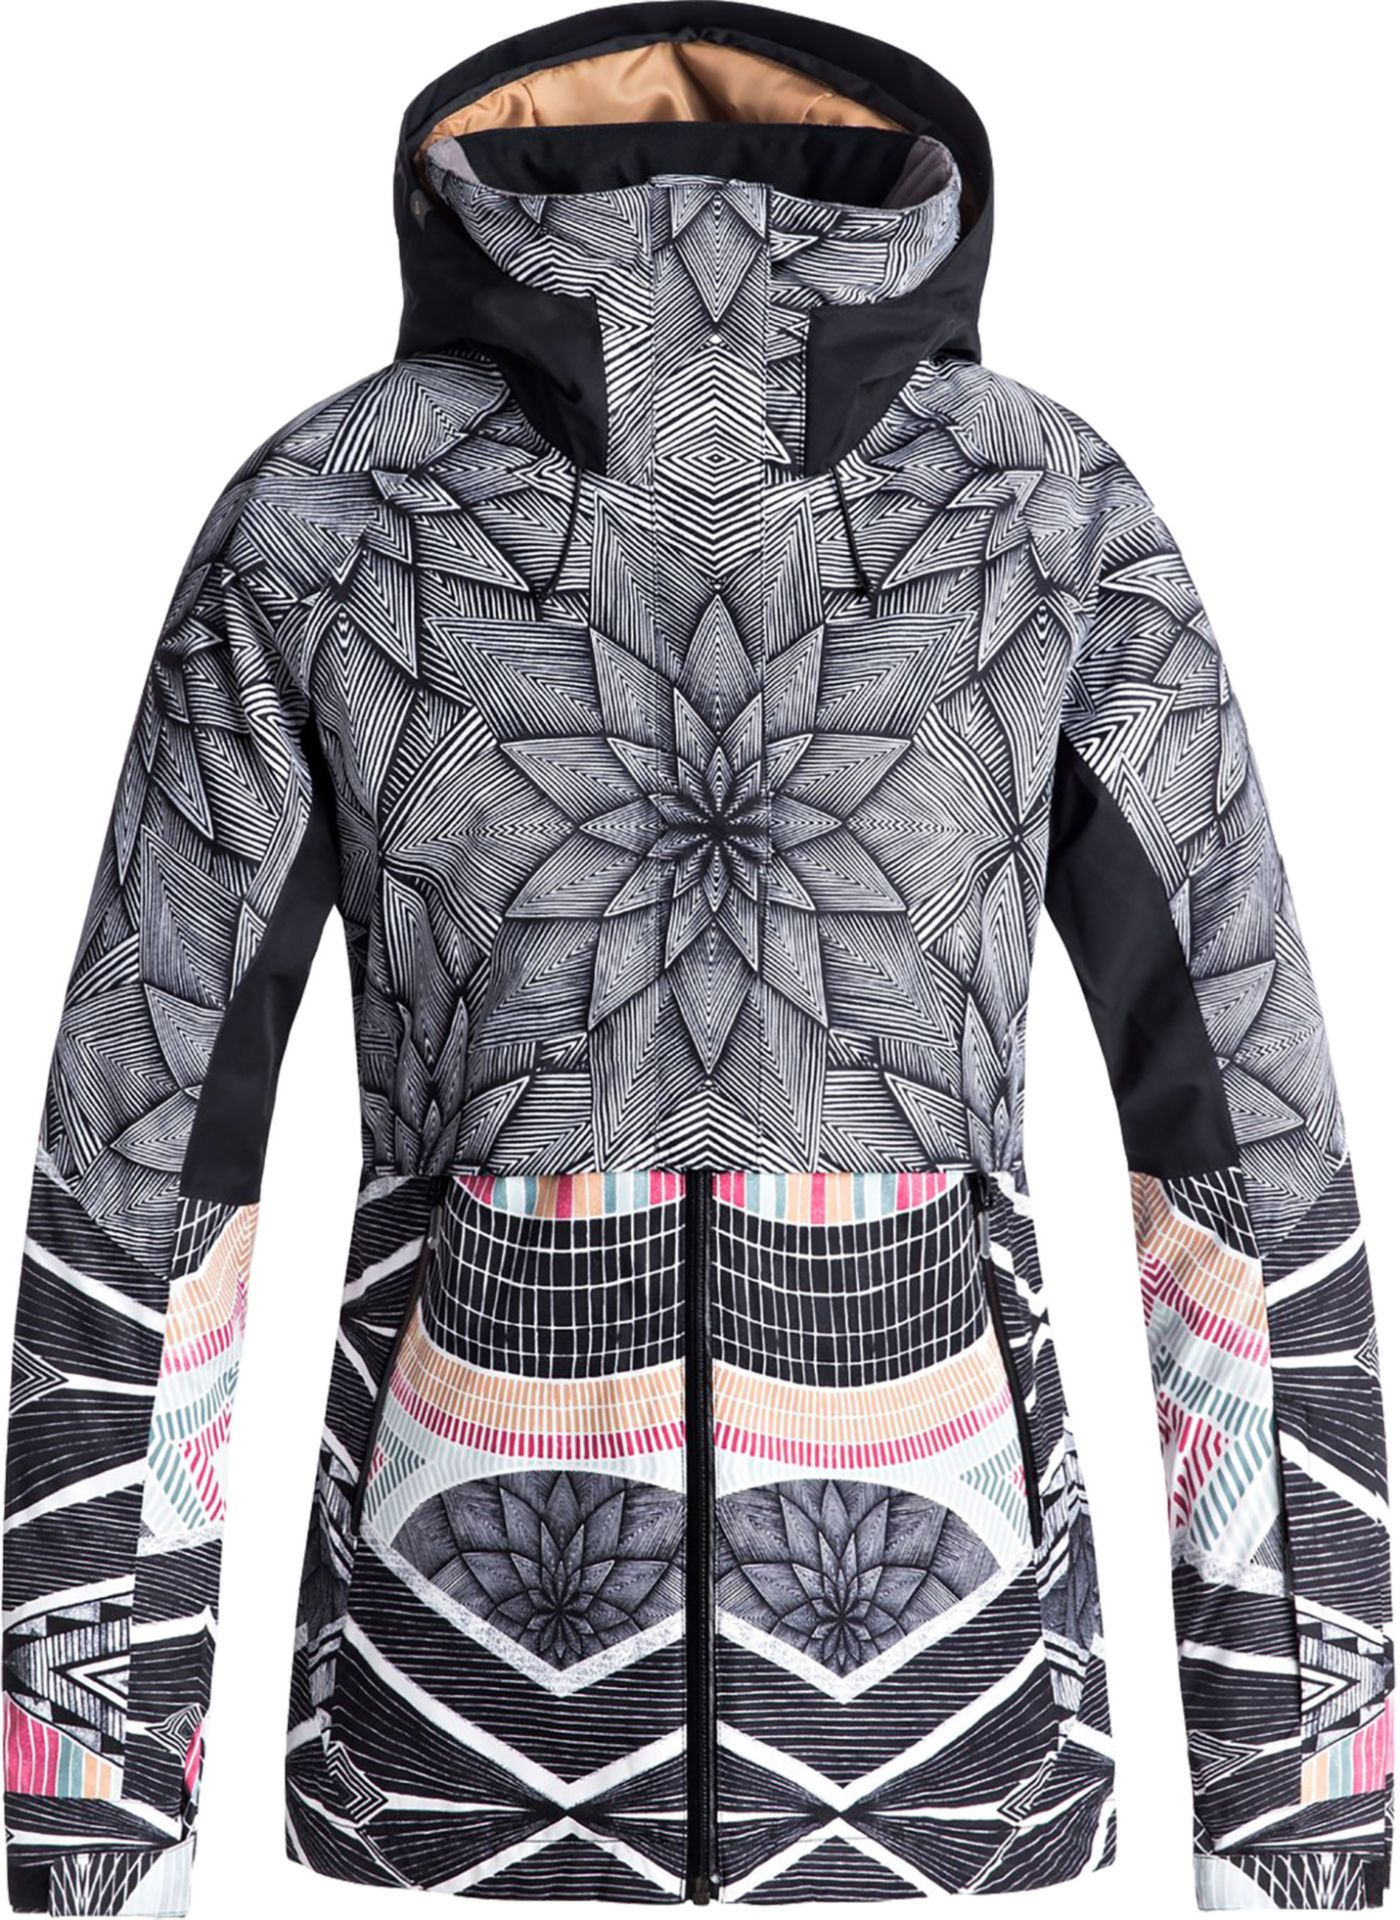 Roxy Women's Frozen Flow Jacket